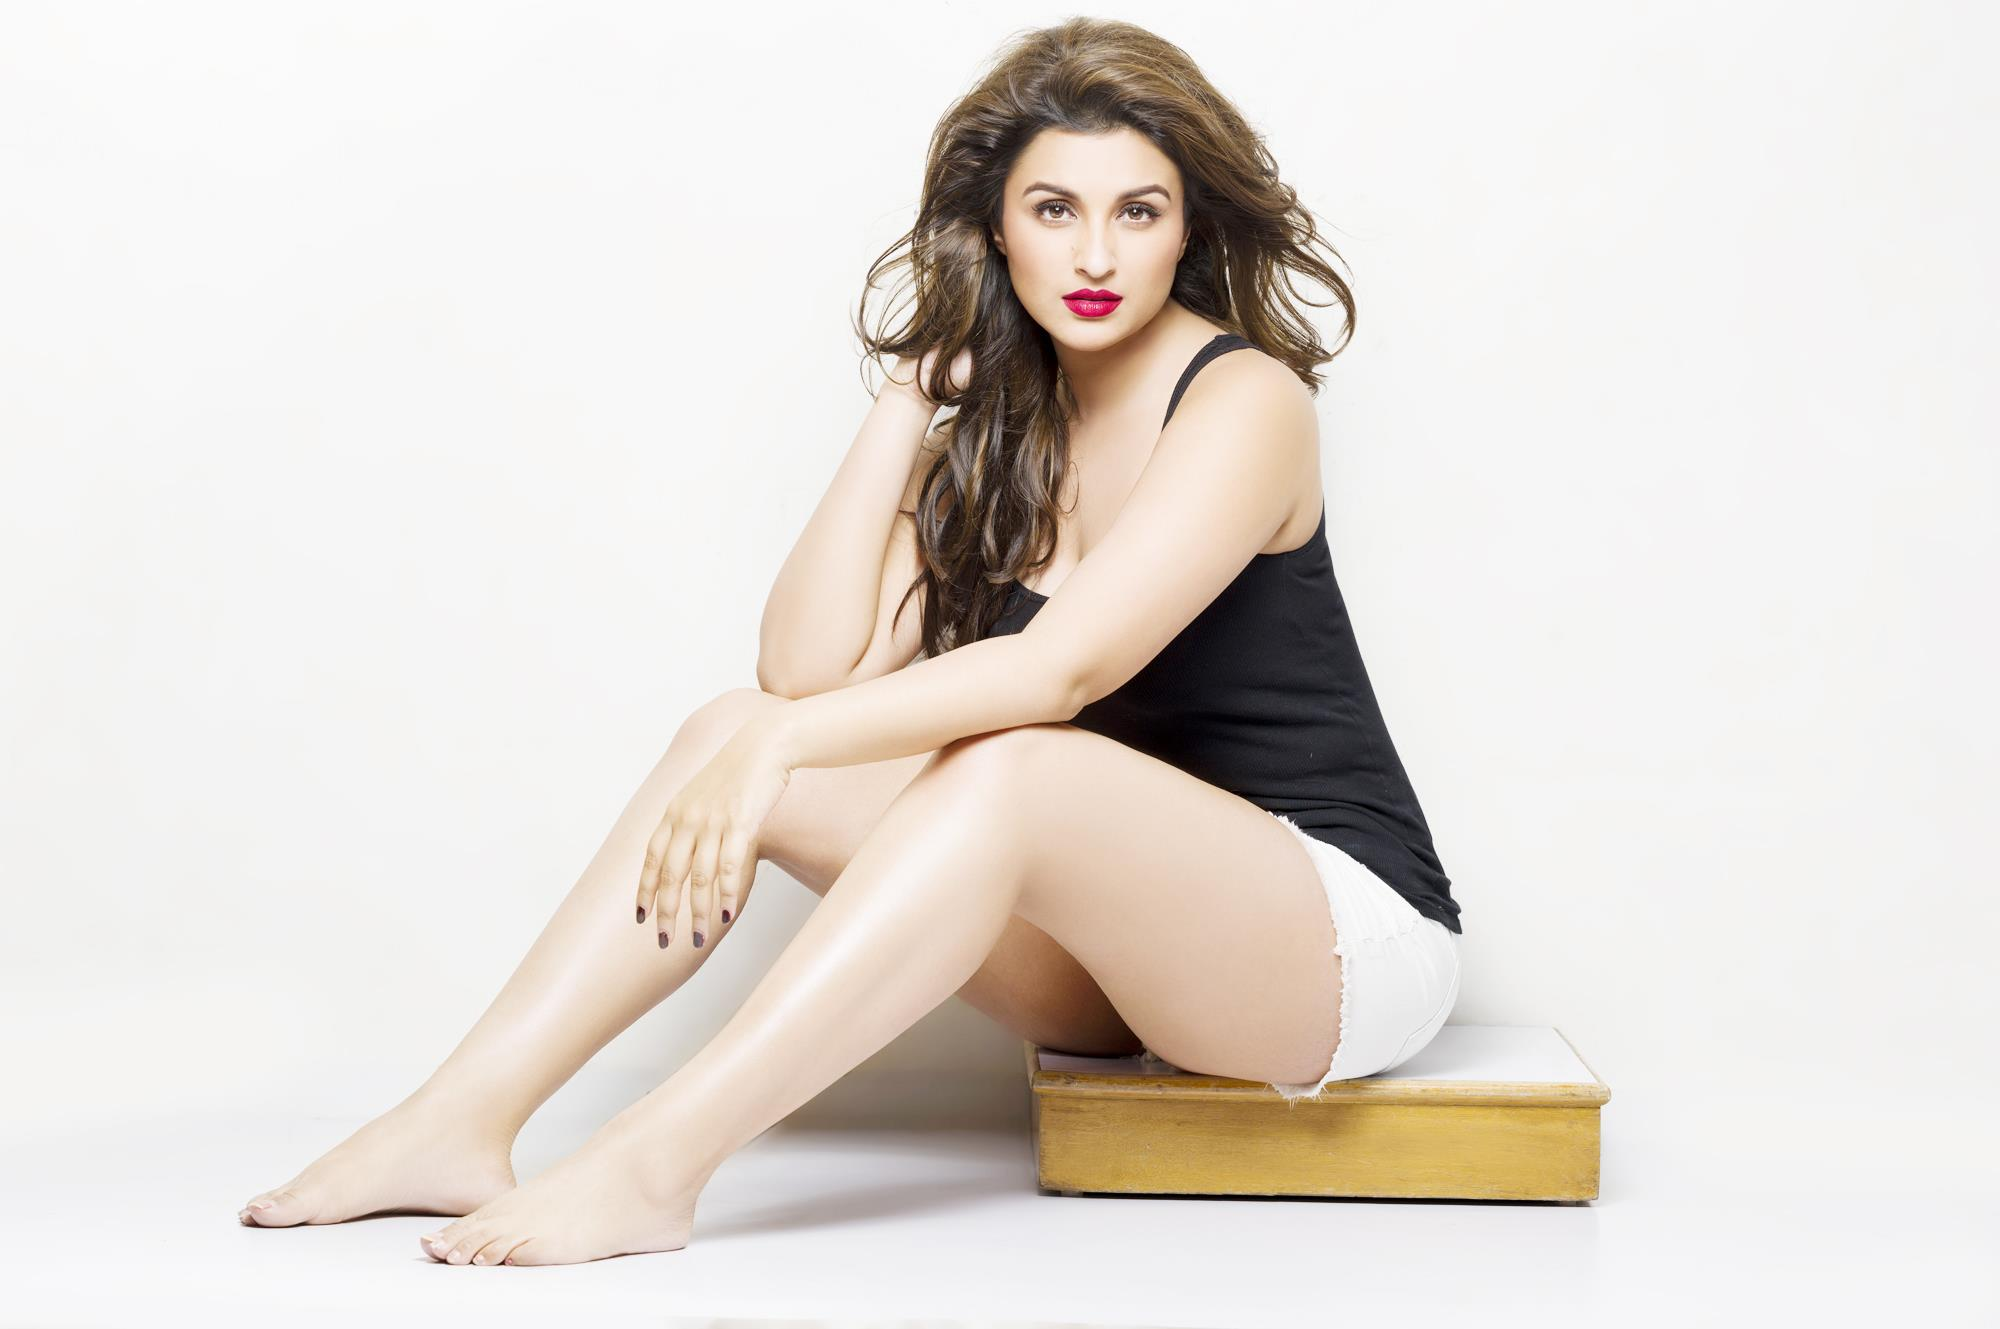 Opinion, Parineeti chopra hot legs are definitely